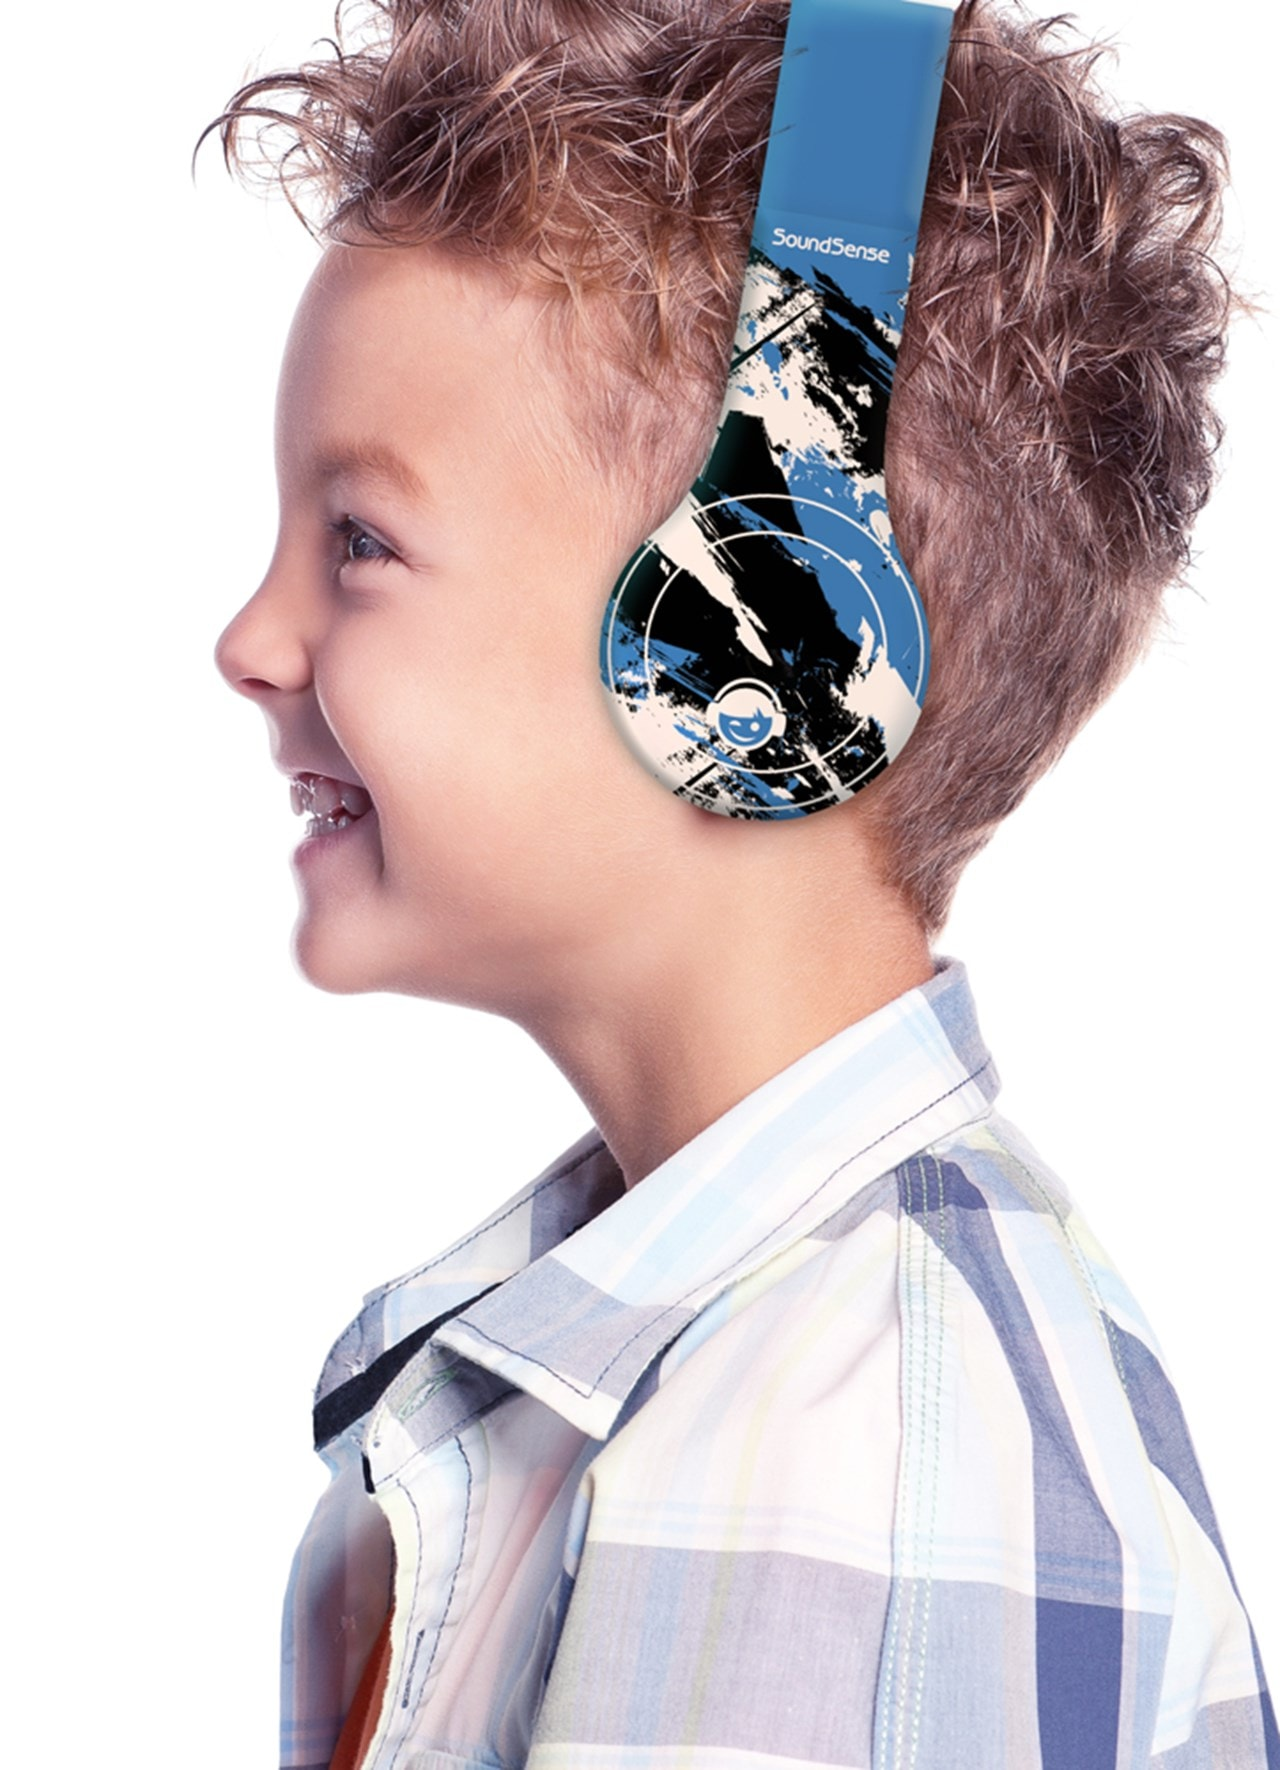 Roam Soundsense Blue Kids Headphones - 4